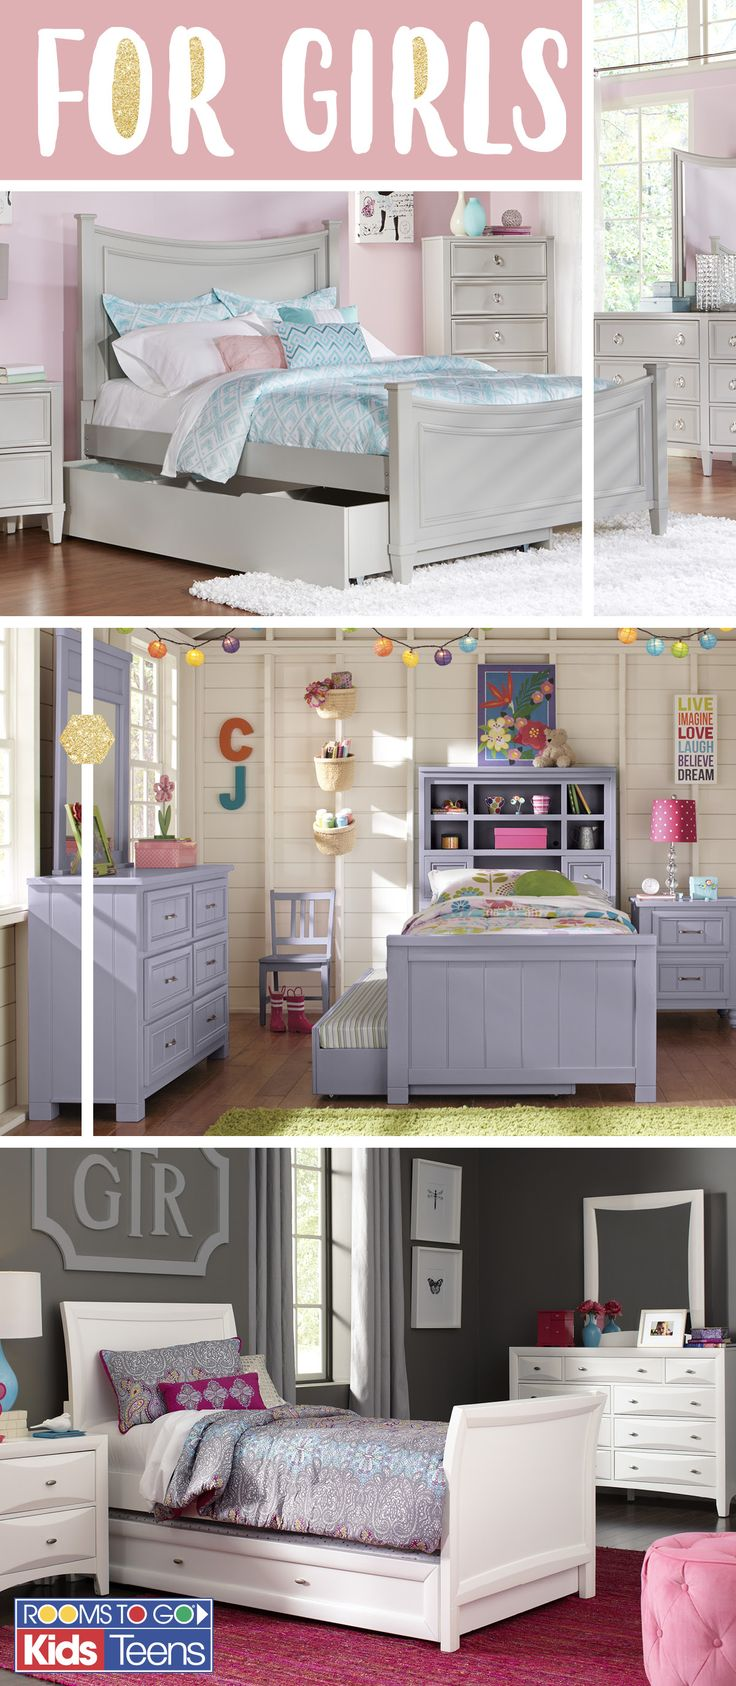 13 best images about Glam & Gorgeous Girls Rooms on Pinterest